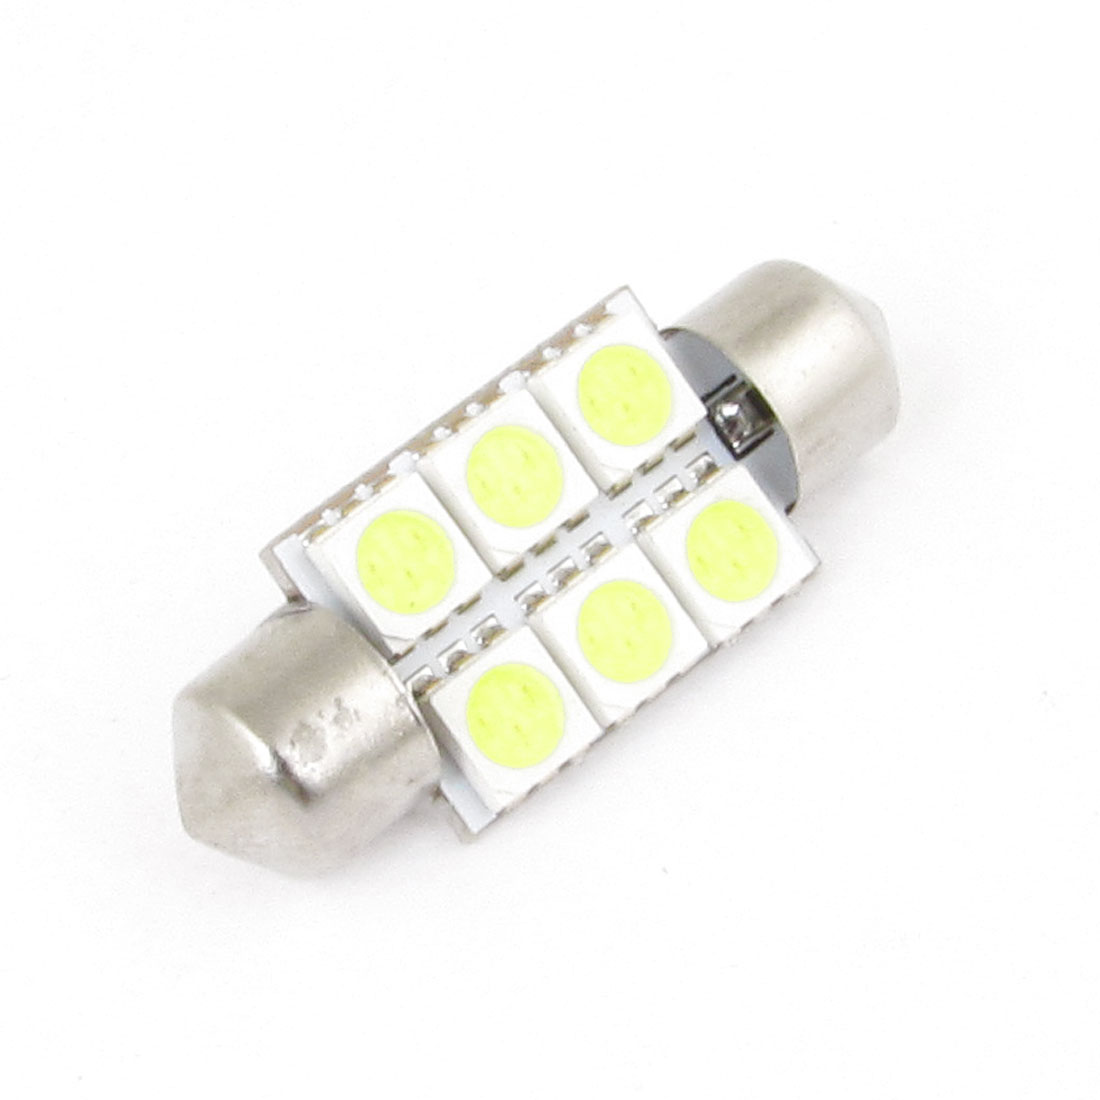 Car White 35mm 6 5050 SMD Festoon LED Light Dome Lamp Bulb DC 12V